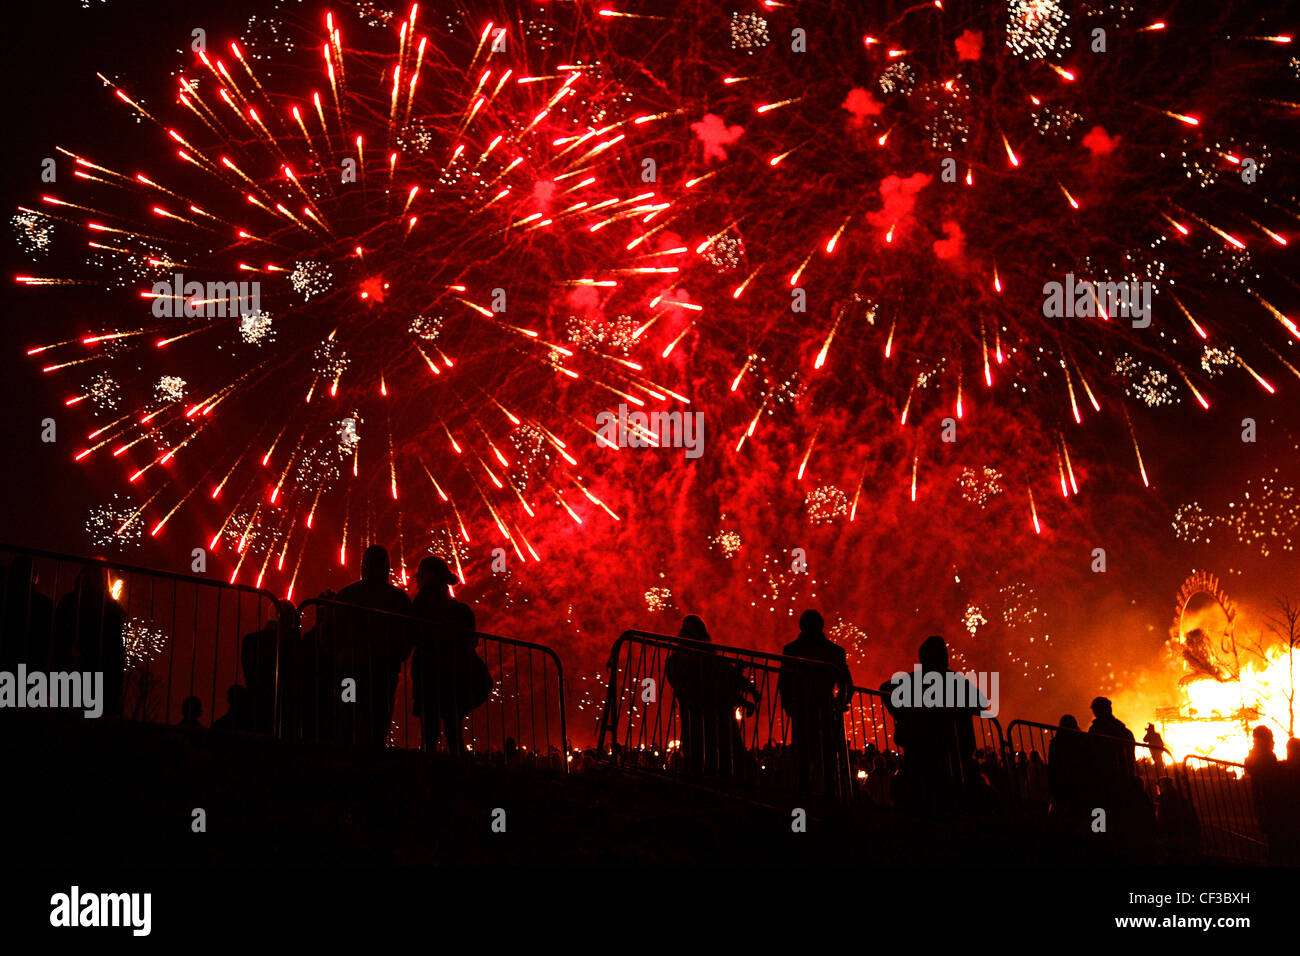 Fireworks at the Calton Hill Bonfire in Edinburgh. - Stock Image